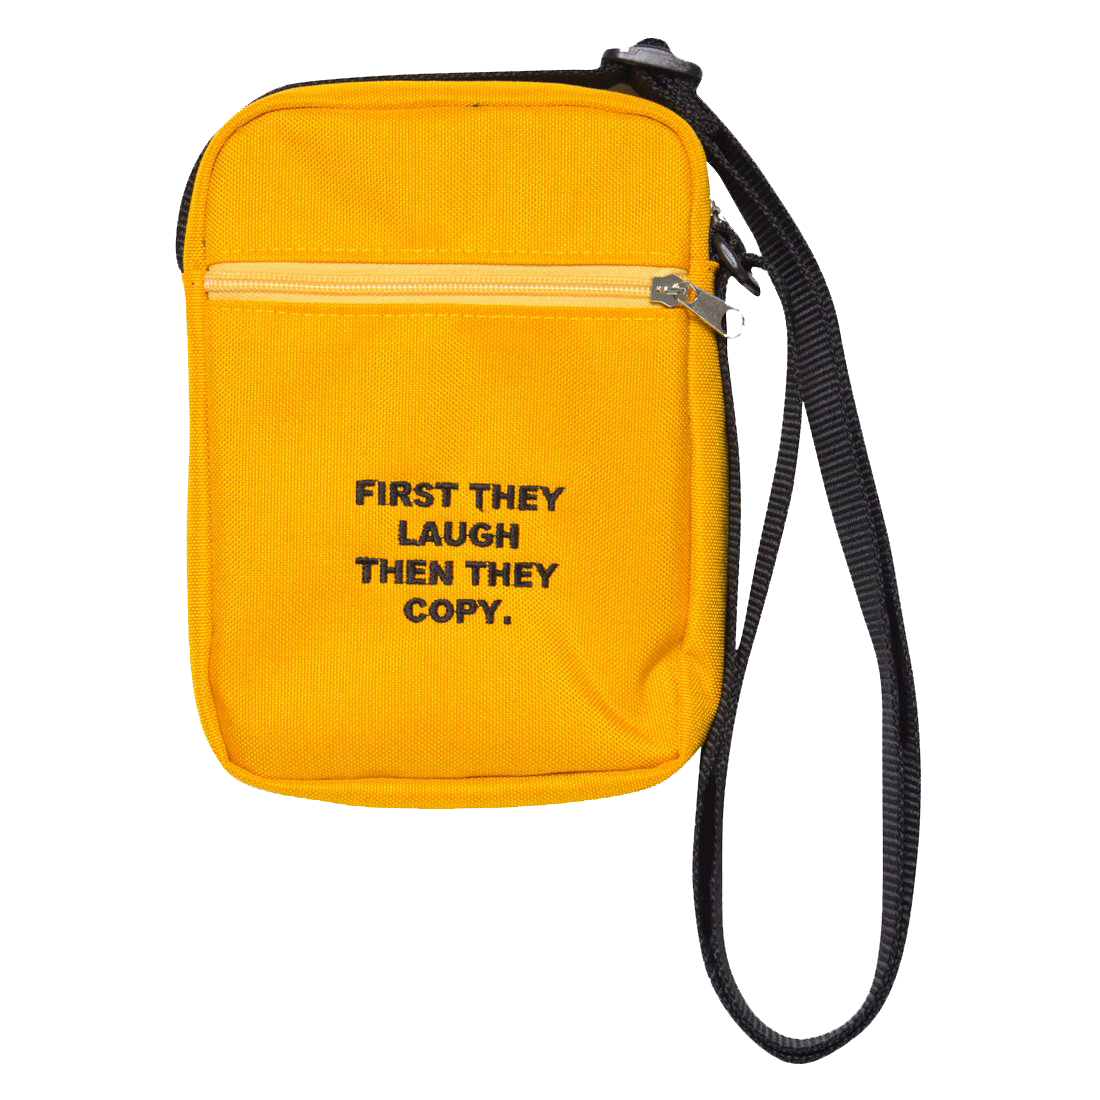 First They Laugh Then They Copy Yellow Shoulder Bag Satchel